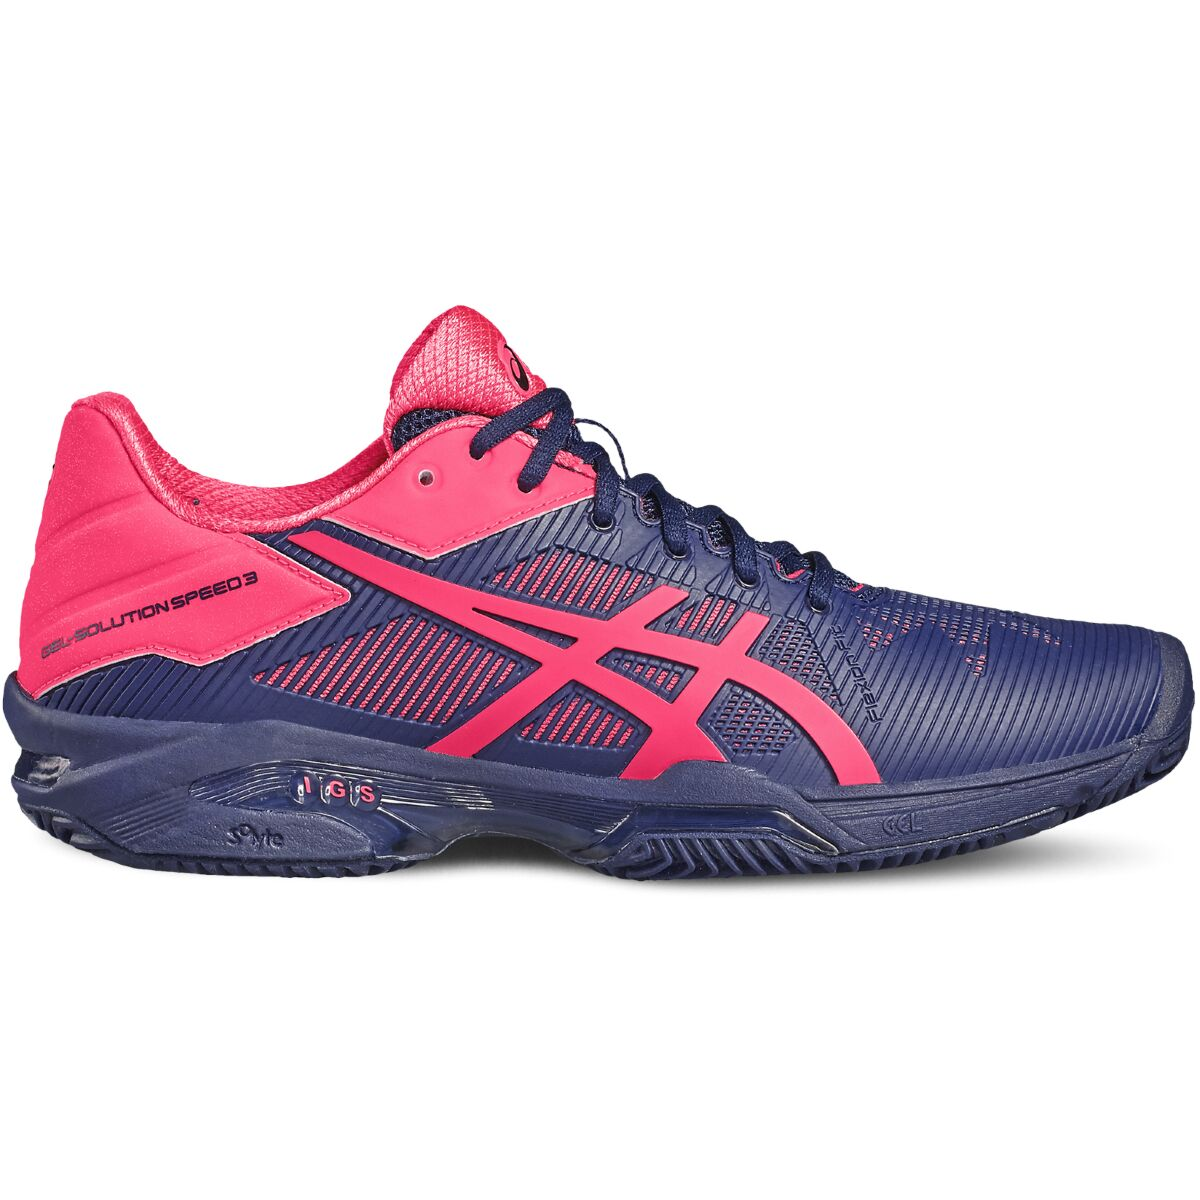 Asics Gel Solution Speed 3 Clay Women's Tennis Shoes